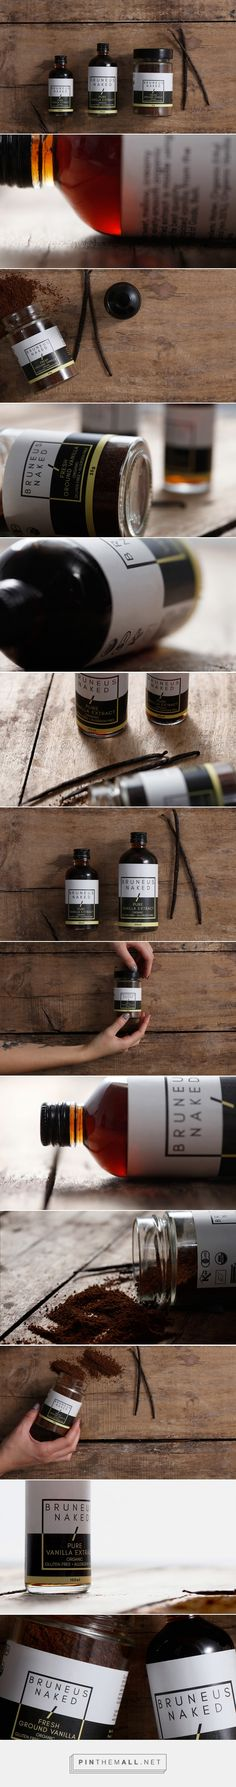 Bruneus Naked Vanilla - Packaging of the World - Creative Package Design Gallery - http://www.packagingoftheworld.com/2016/11/bruneus-naked-vanilla.html